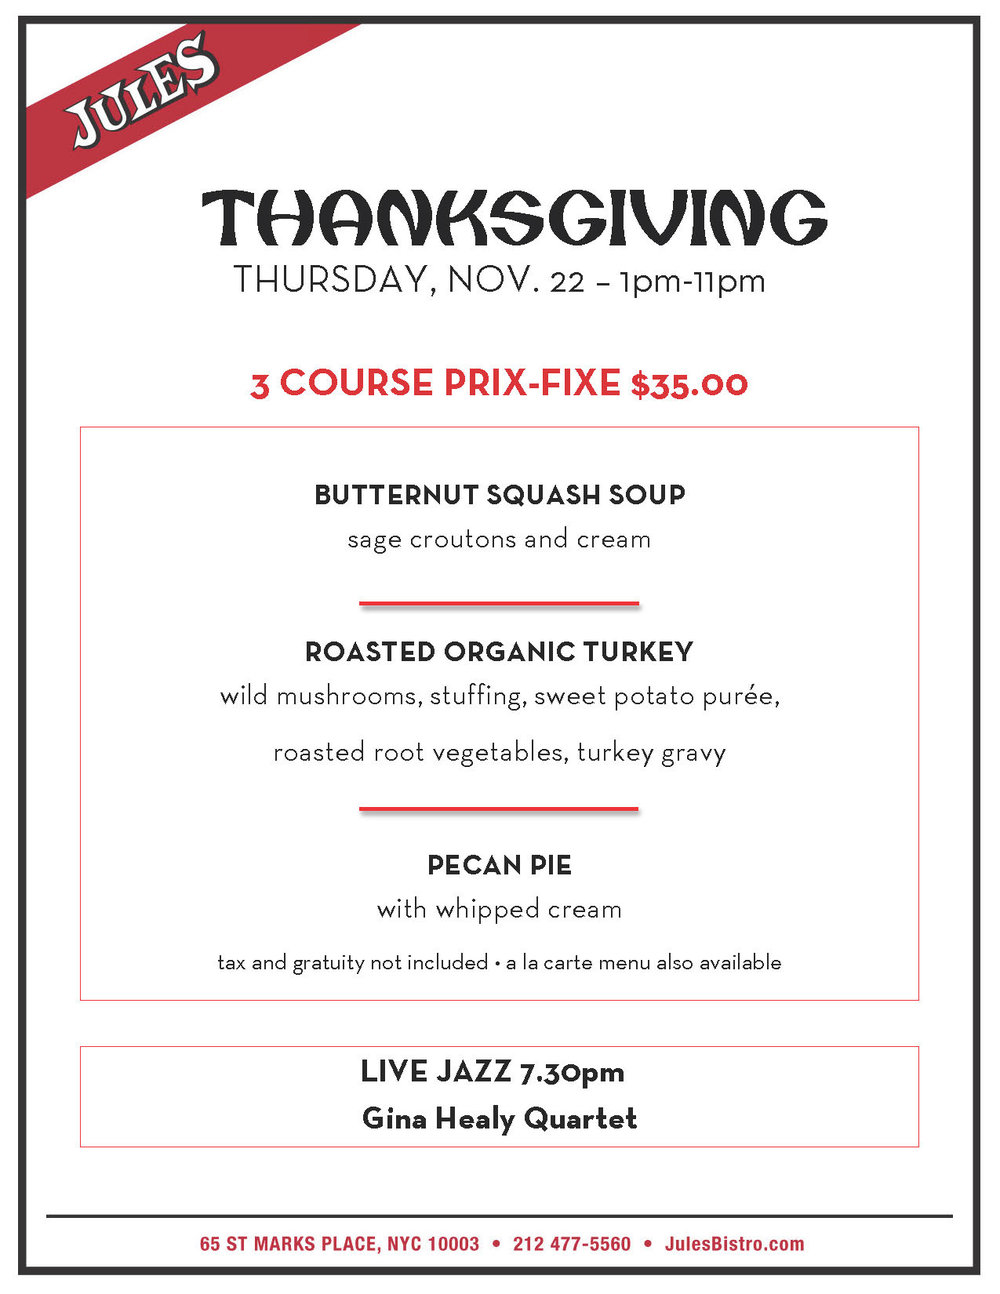 JU Thanksgiving2018menu.jpg